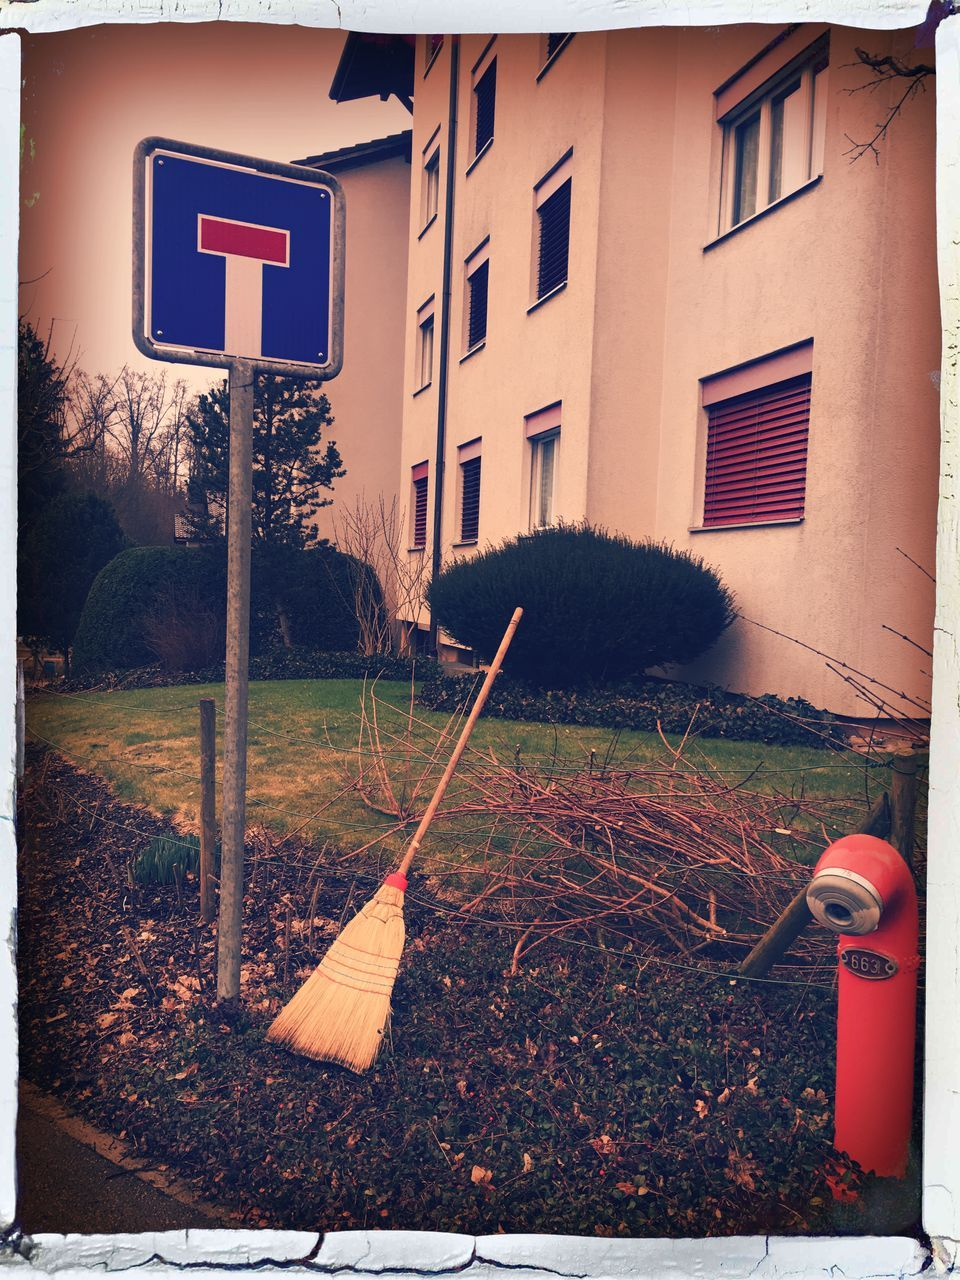 Road Sign And Broom Outside Building In City